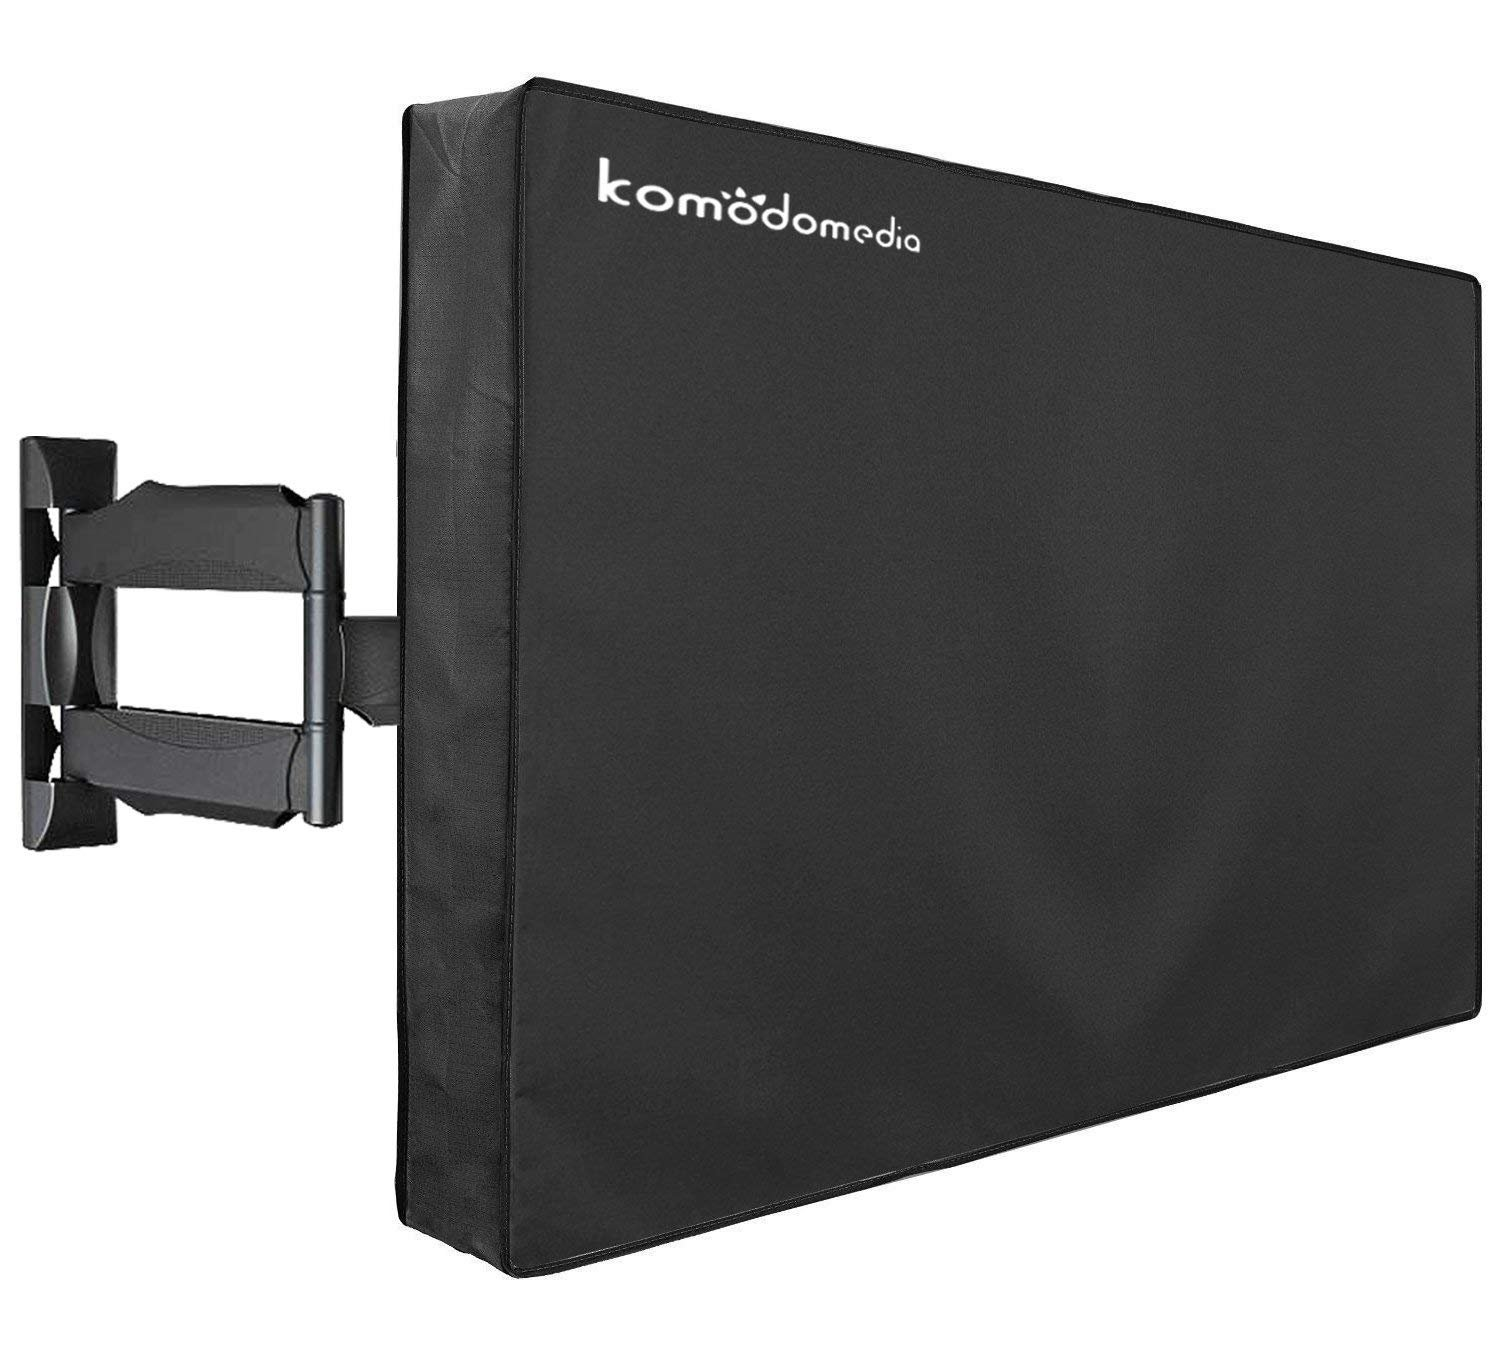 """Outdoor TV Cover 40"""" – 43"""" - Waterproof TV Enclosure Offers 360-Degree Coverage, Accommodates Single Mounts and Stands - Weatherproof, Dust-Proof, UV Protection - Heavy-Duty, Premium Quality"""